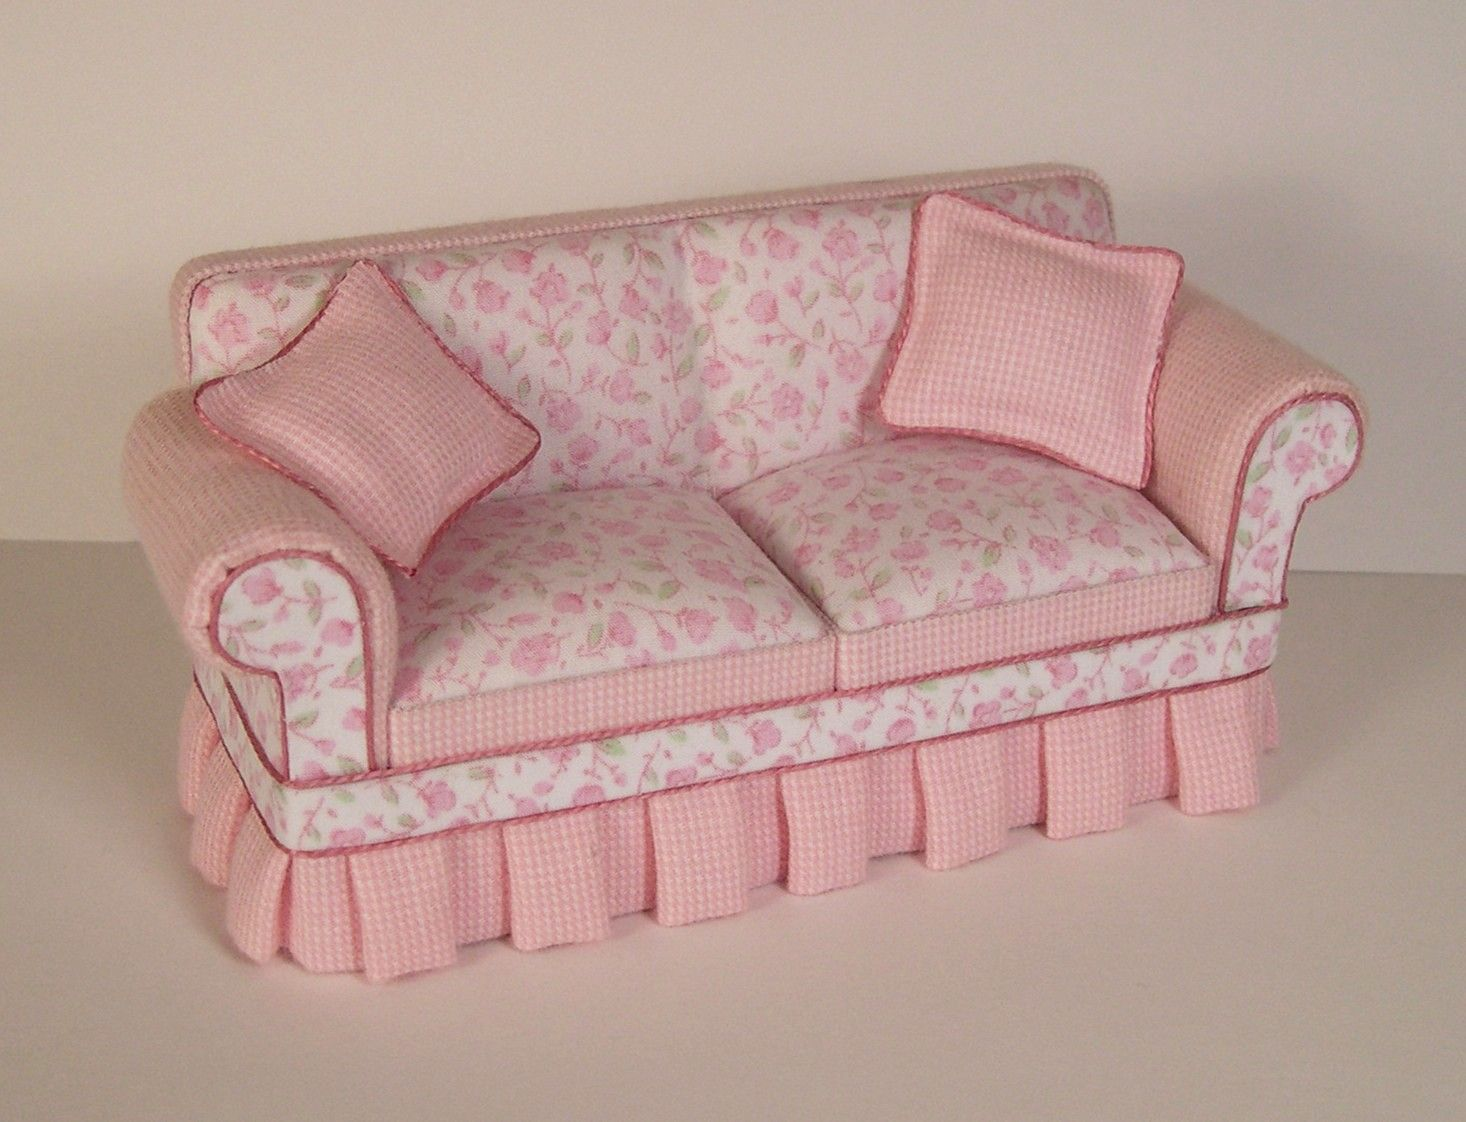 Vintage Shabby Chic Furniture | Shabby Chic Sofa [SC100] : Leeu0027s Line  Wholesale Dollhouse Miniature .